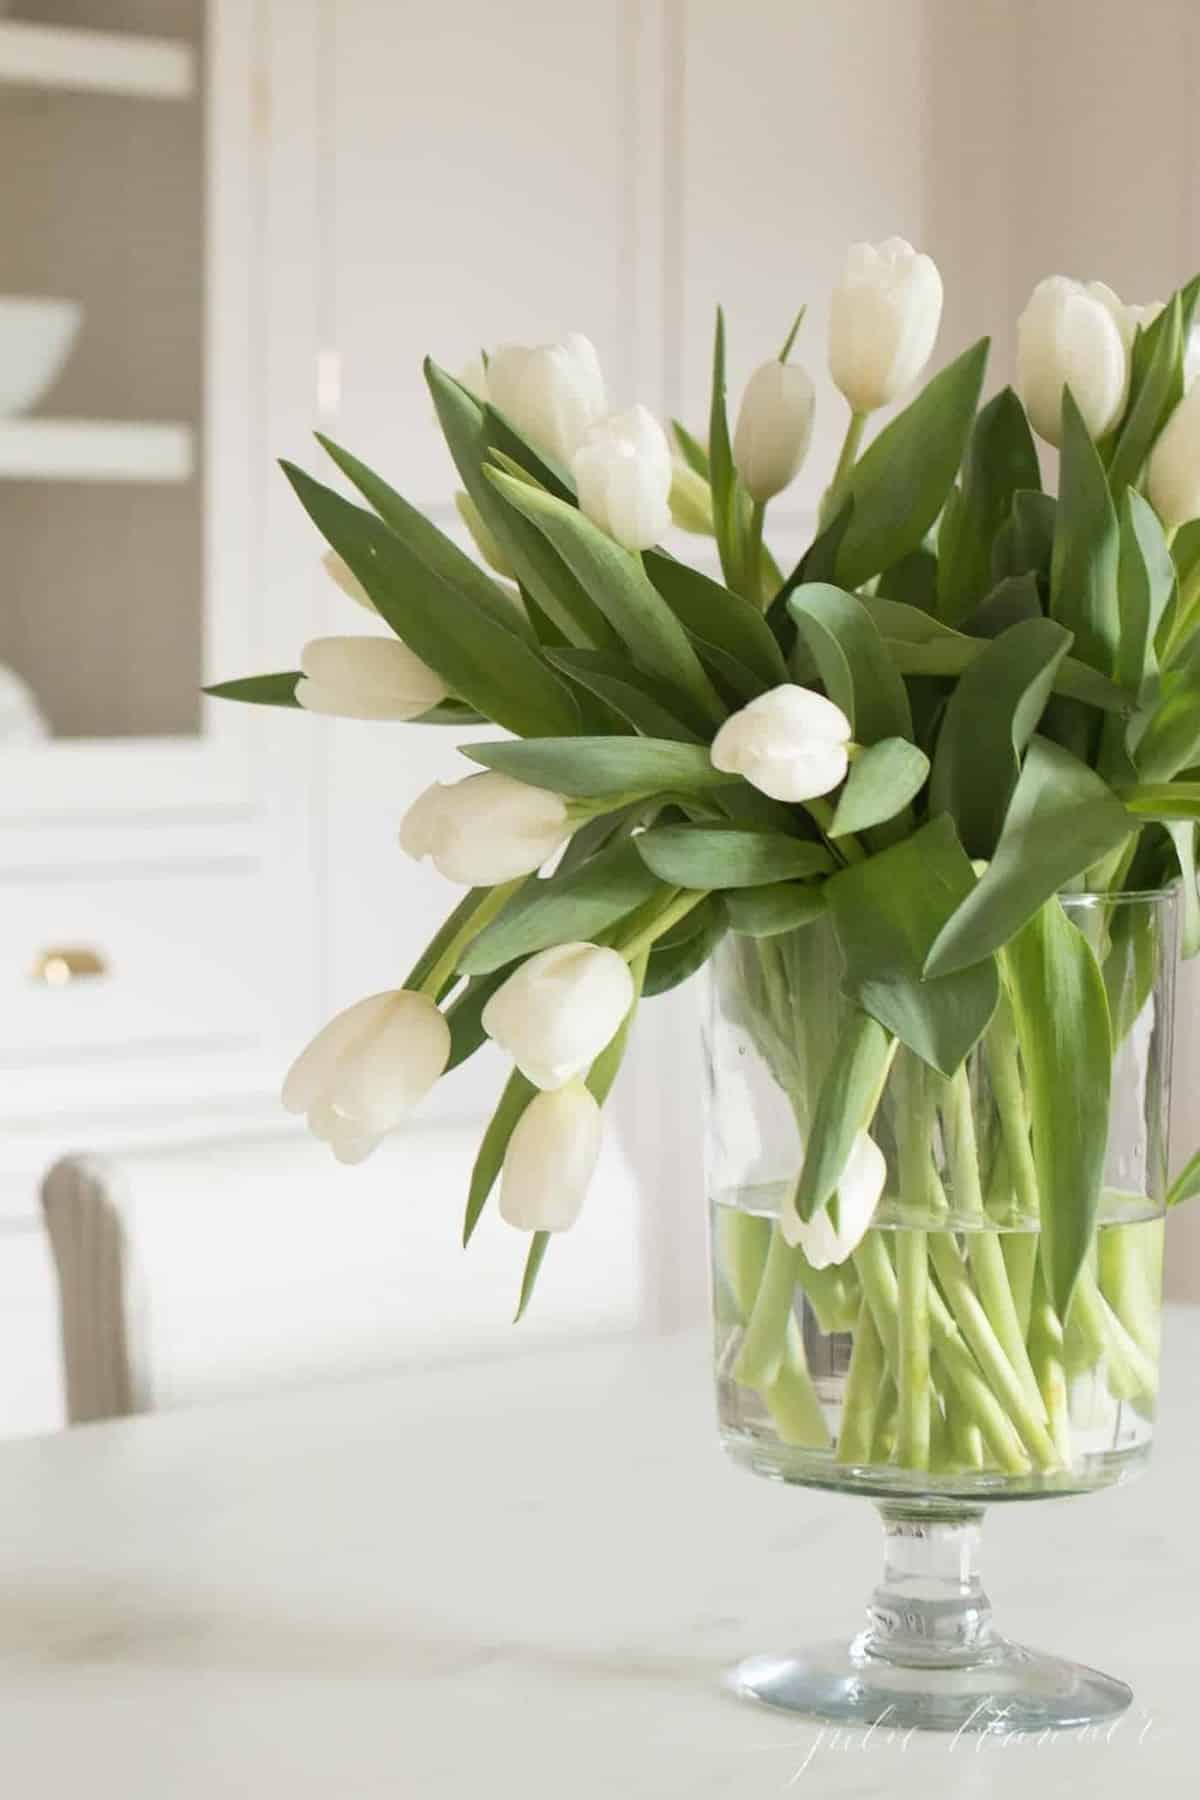 A white kitchen with a clear vase of white tulips.